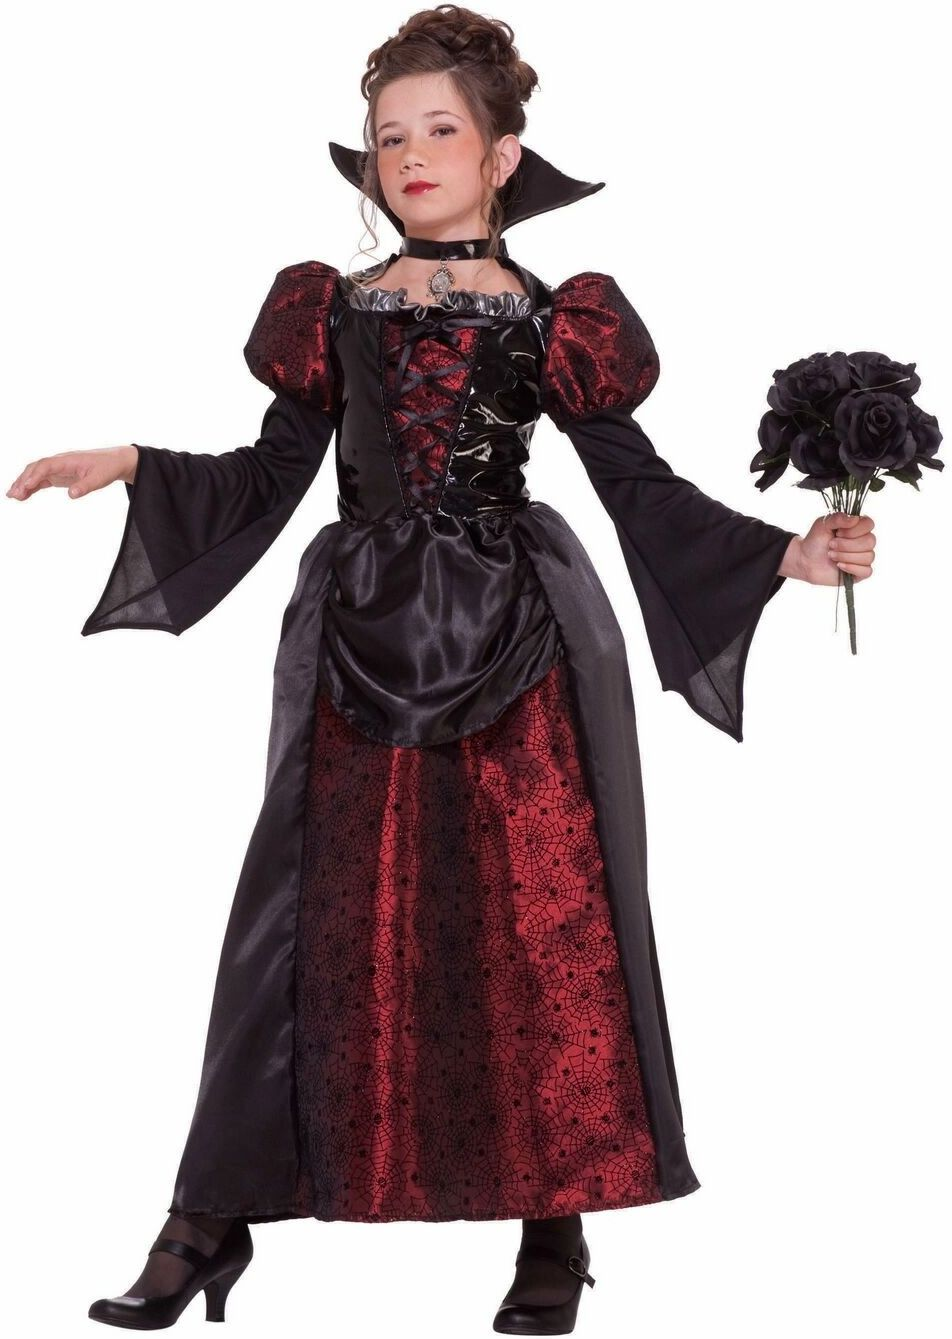 Lace Vampiress Girls Costume